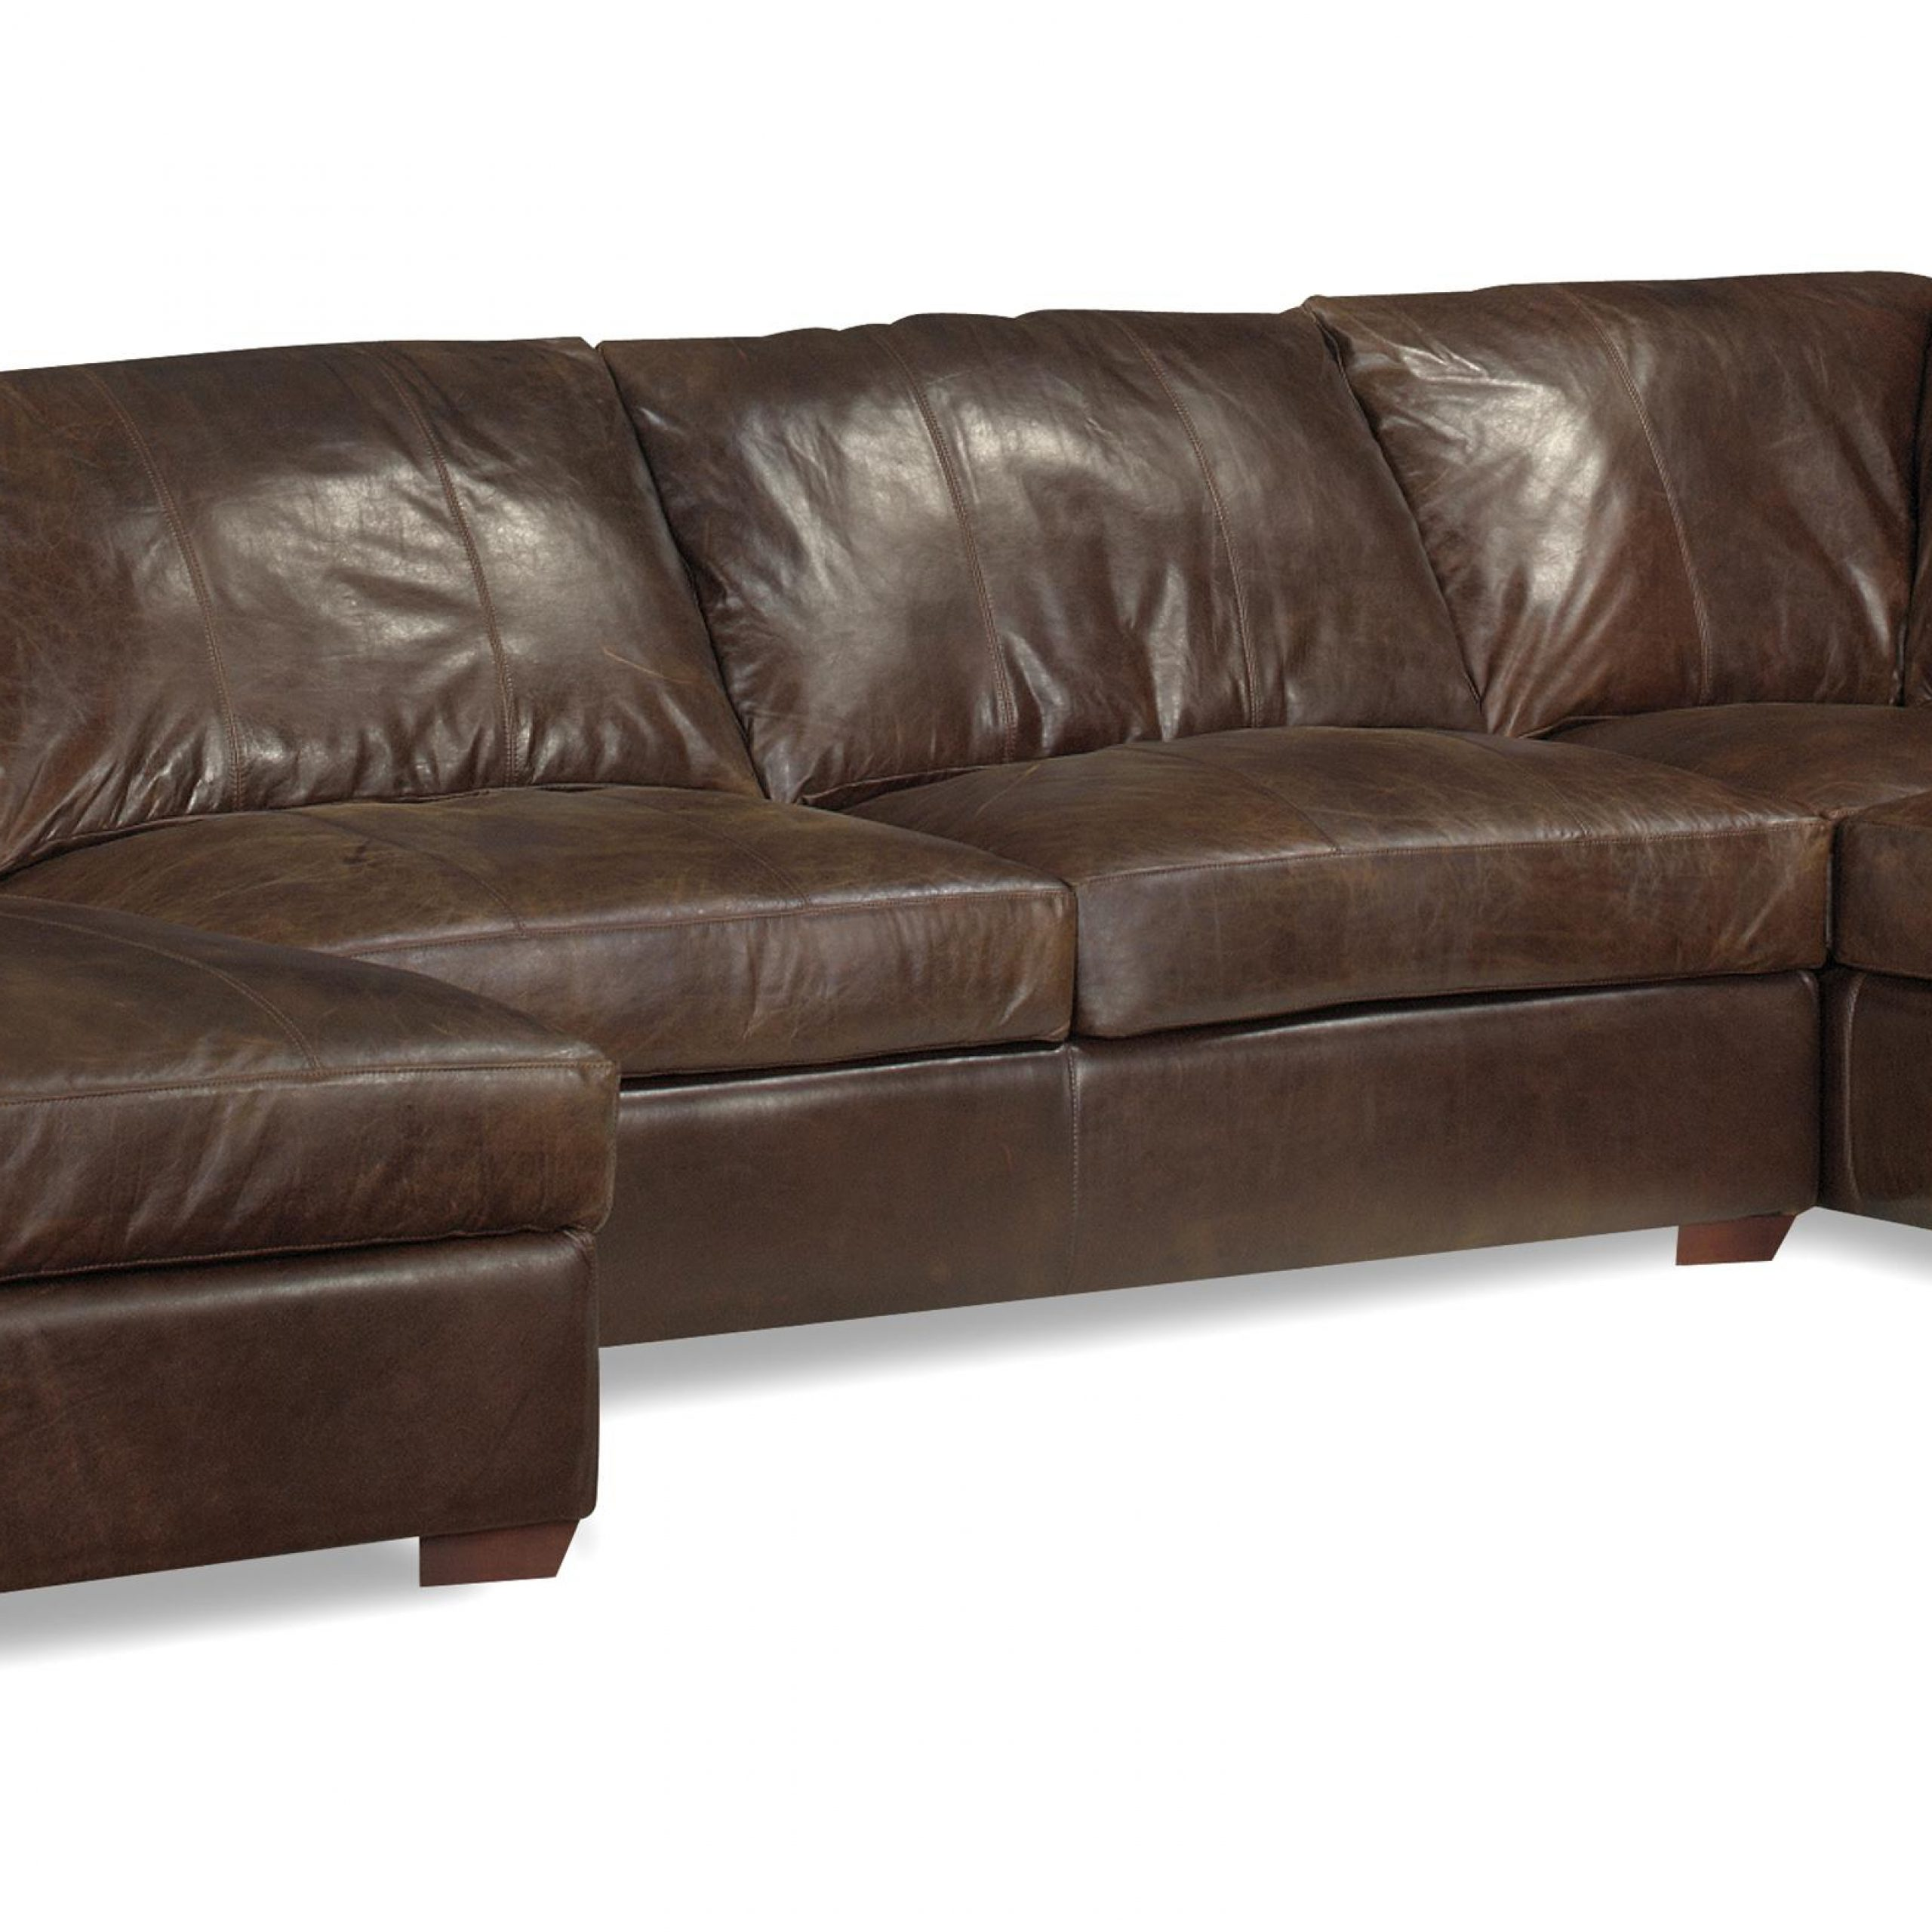 Leather Chaise Sectional Sofa Abbyson Tuscan Top Grain Inside Fashionable 3pc Miles Leather Sectional Sofas With Chaise (View 5 of 20)